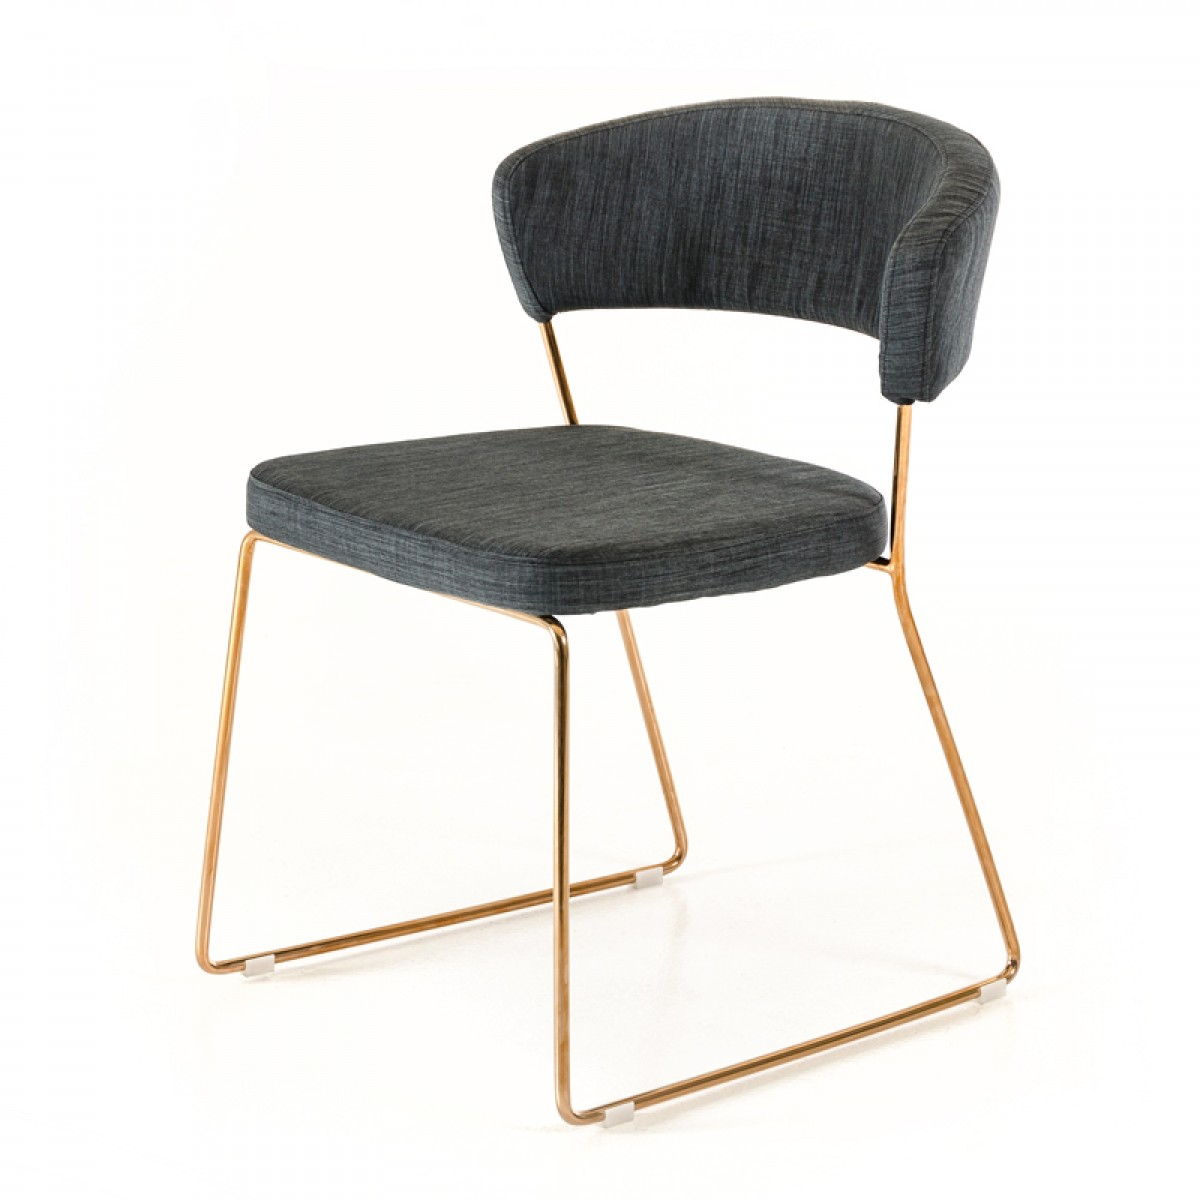 Check out the brand new Rudolpho Modern Grey Dining Chair With Rose Gold available at AdvancedInteriorDesigns.com